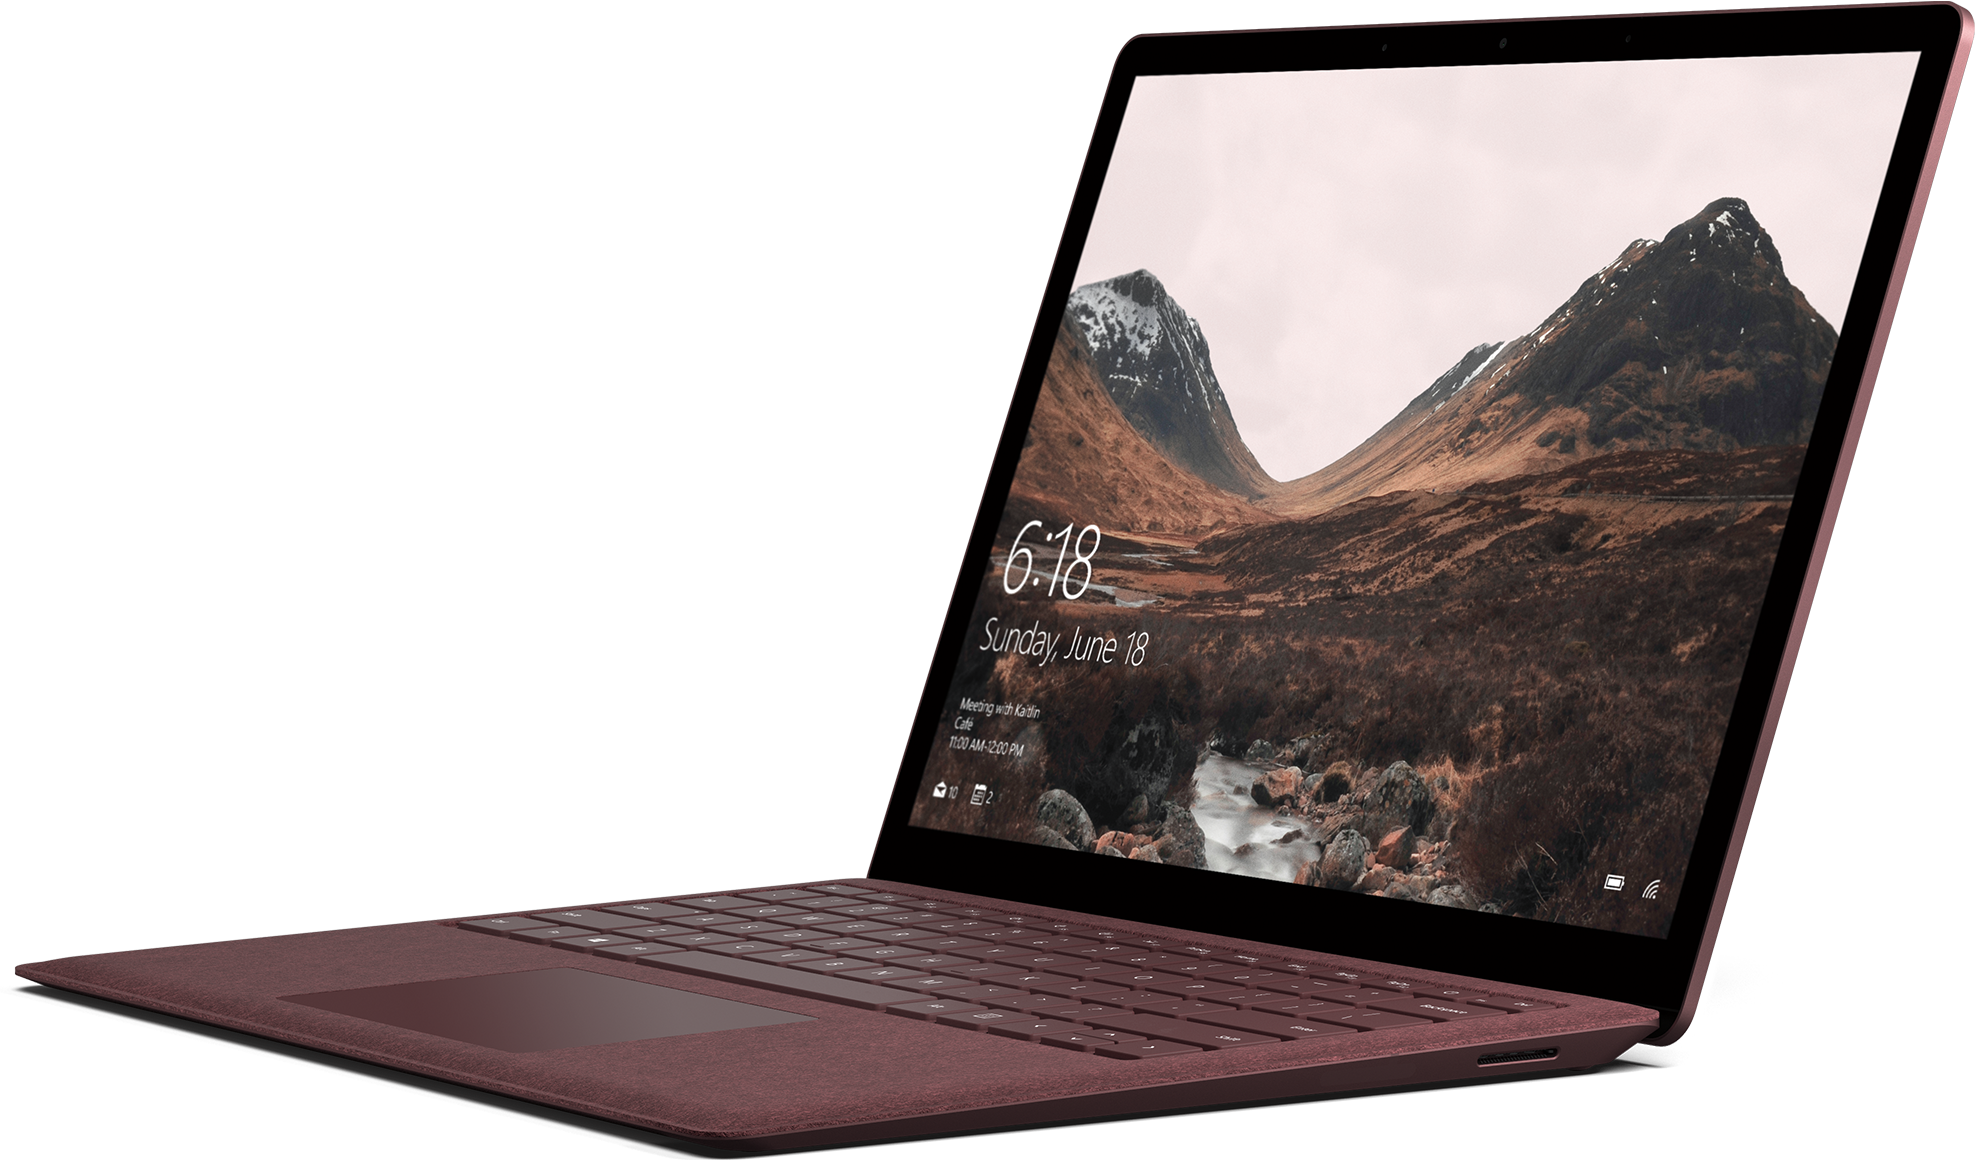 RE1I4Eo?ver=1a15 - Microsoft Surface Laptop (Certified Refurbished) - Intel Core i7 / 512GB SSD / 16GB RAM - Burgundy